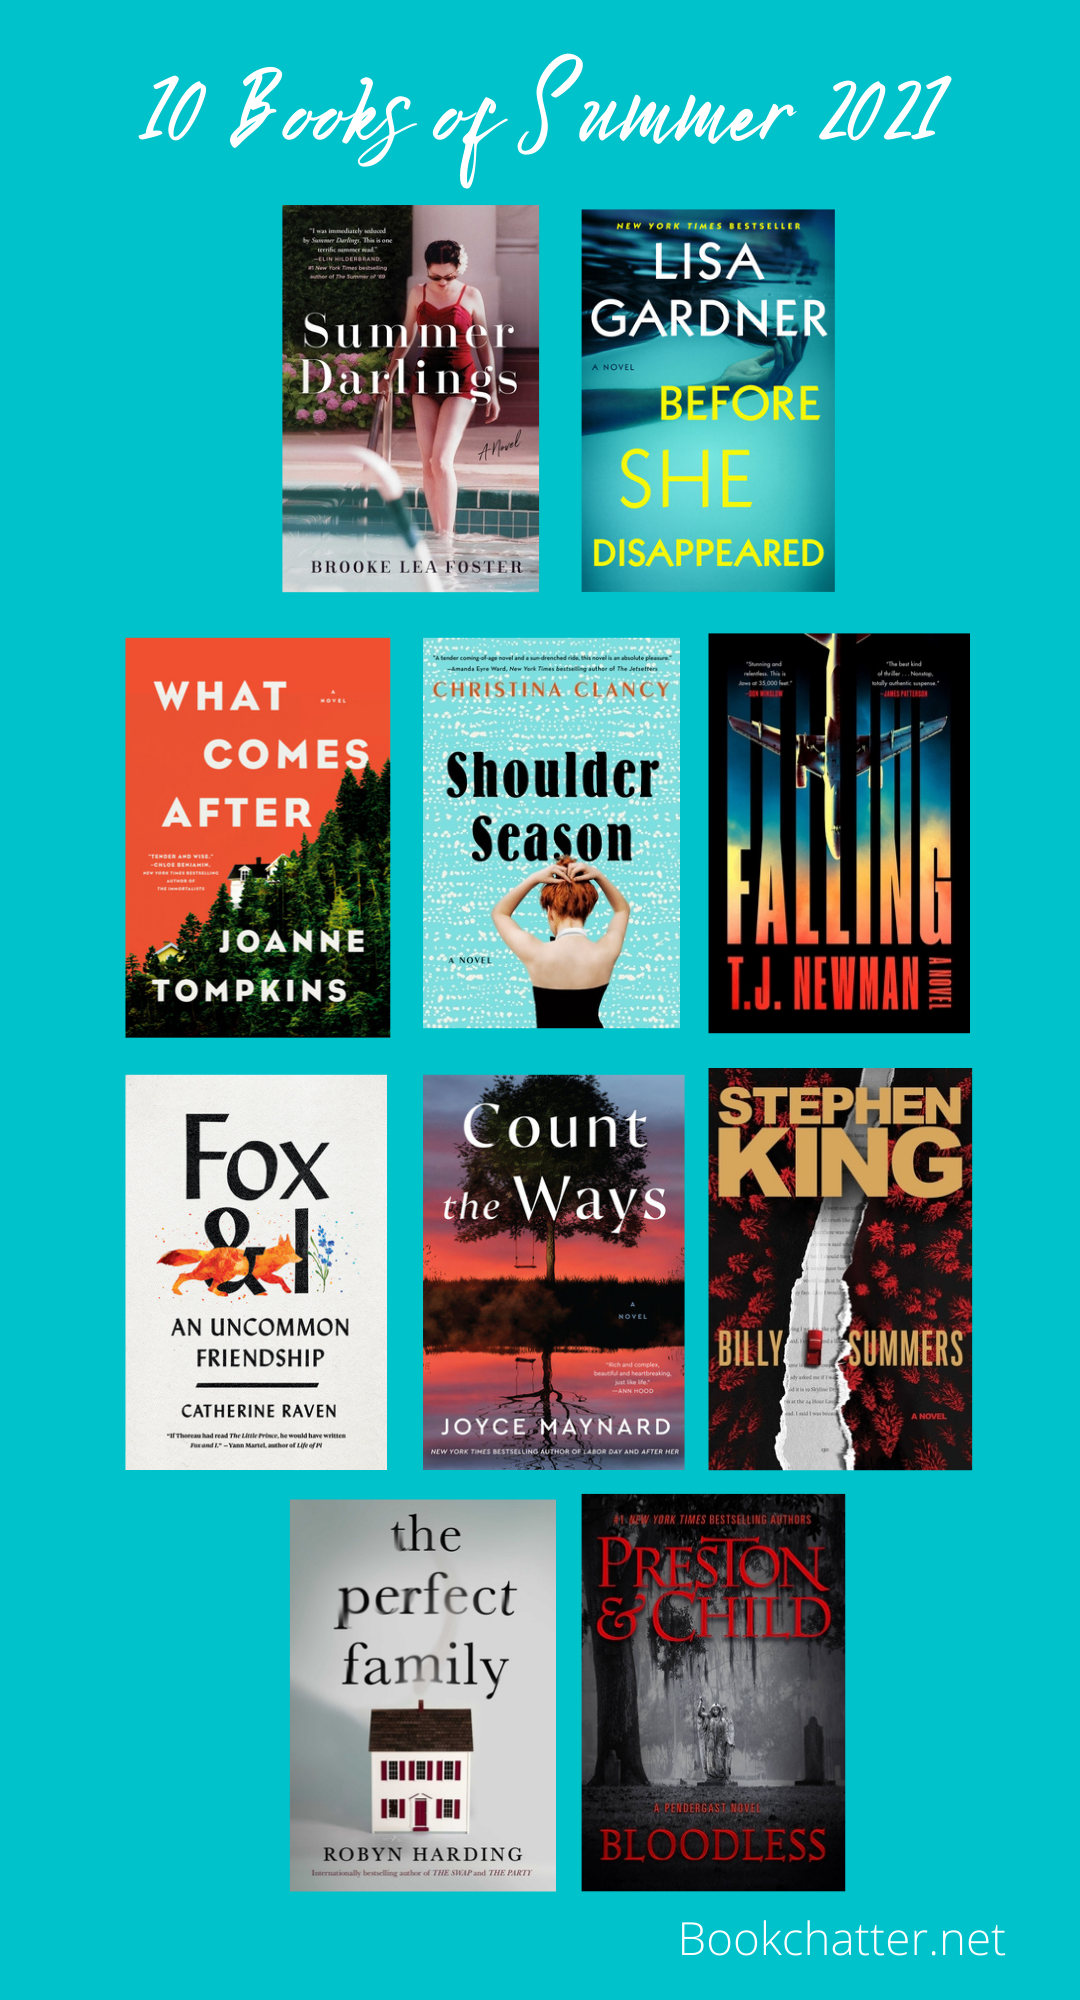 10 Books of Summer 2021 - Book Chatter